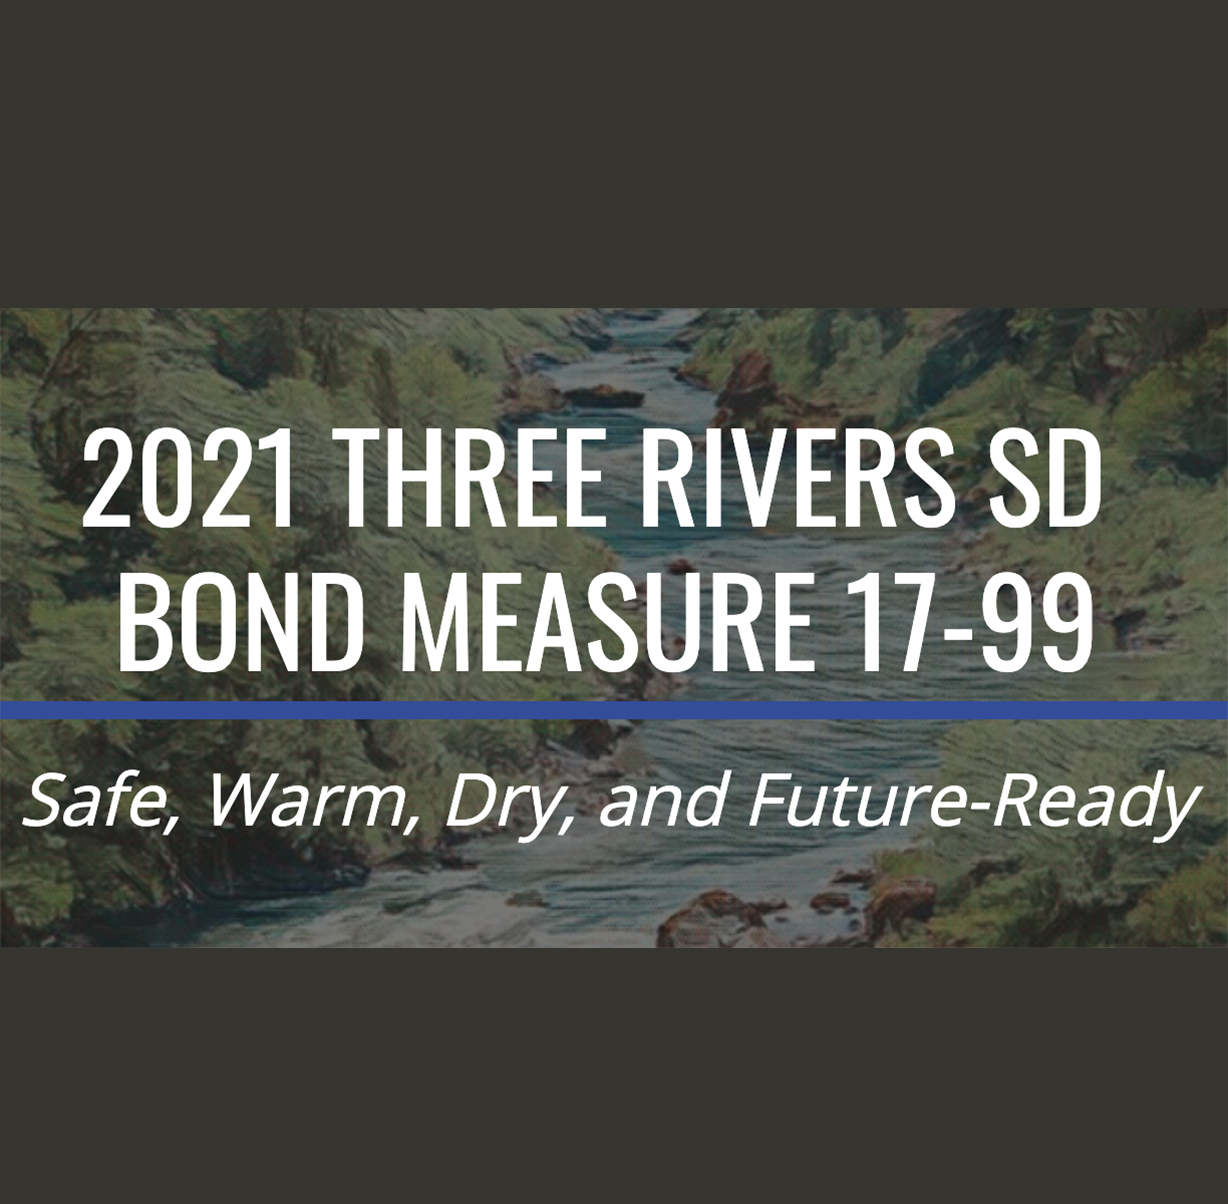 Bonds to Improve Student Safety, Programs and School Facilities.